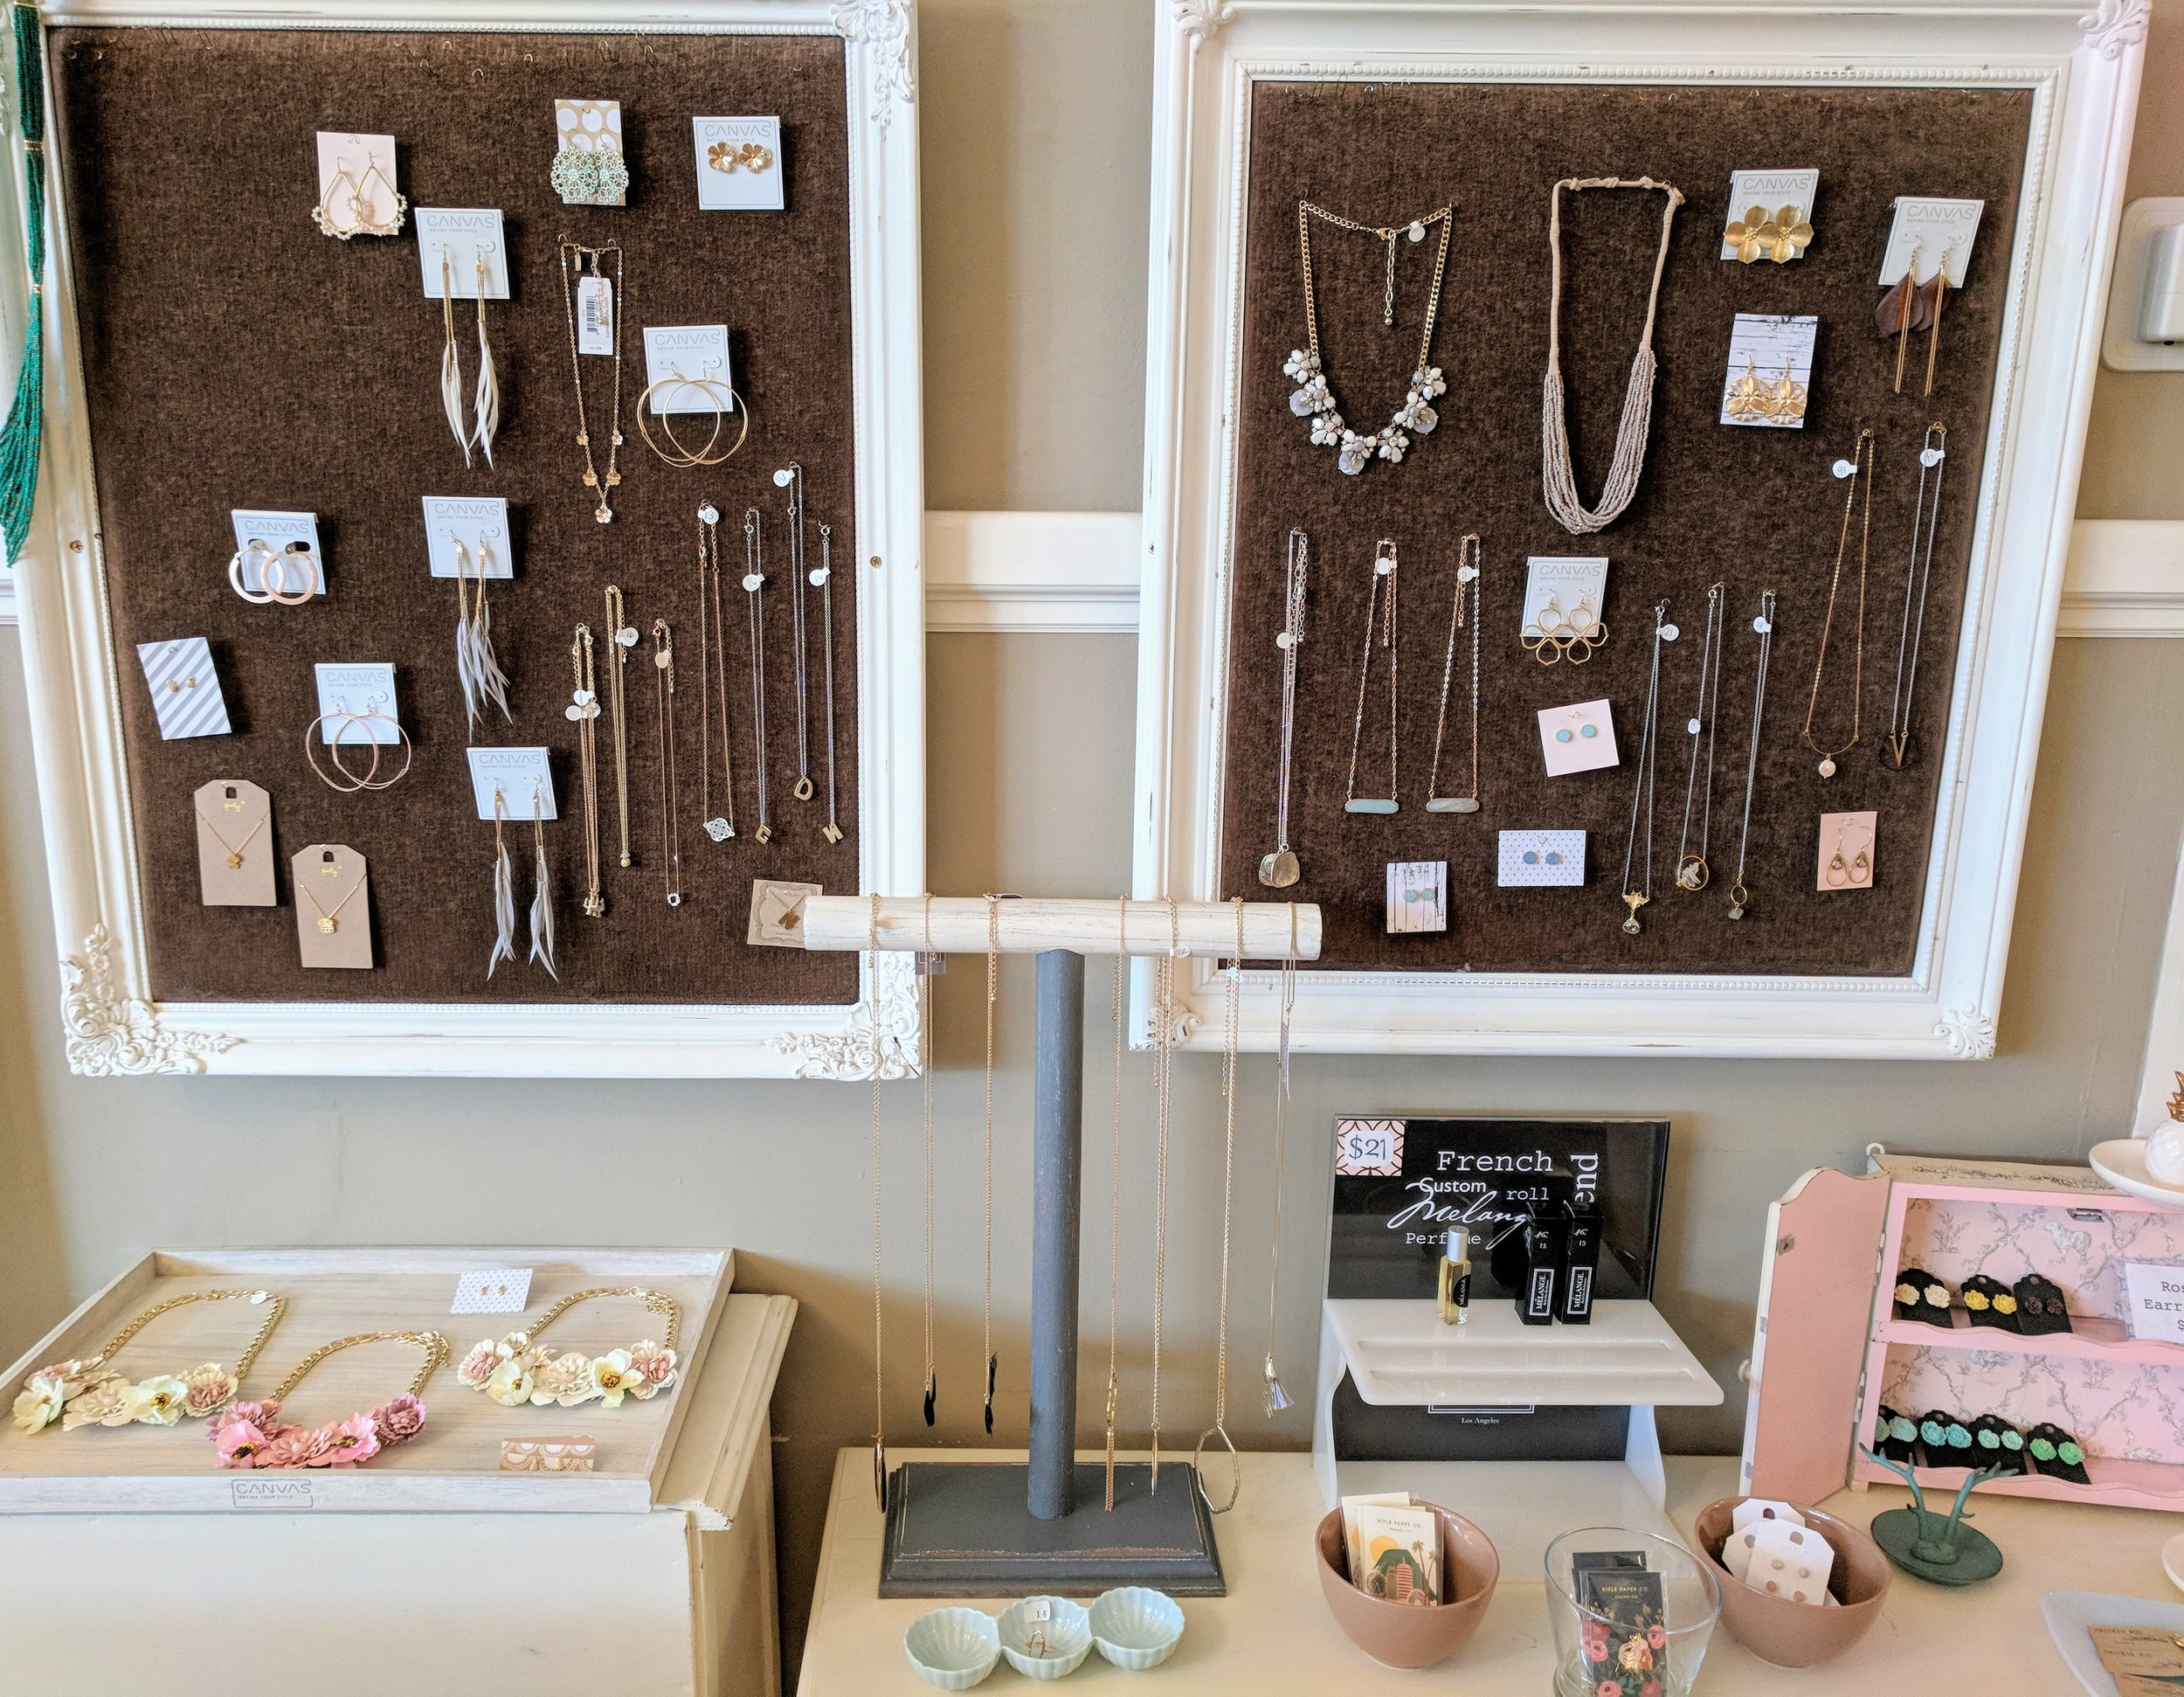 New Jewelry including necklaces and earrings